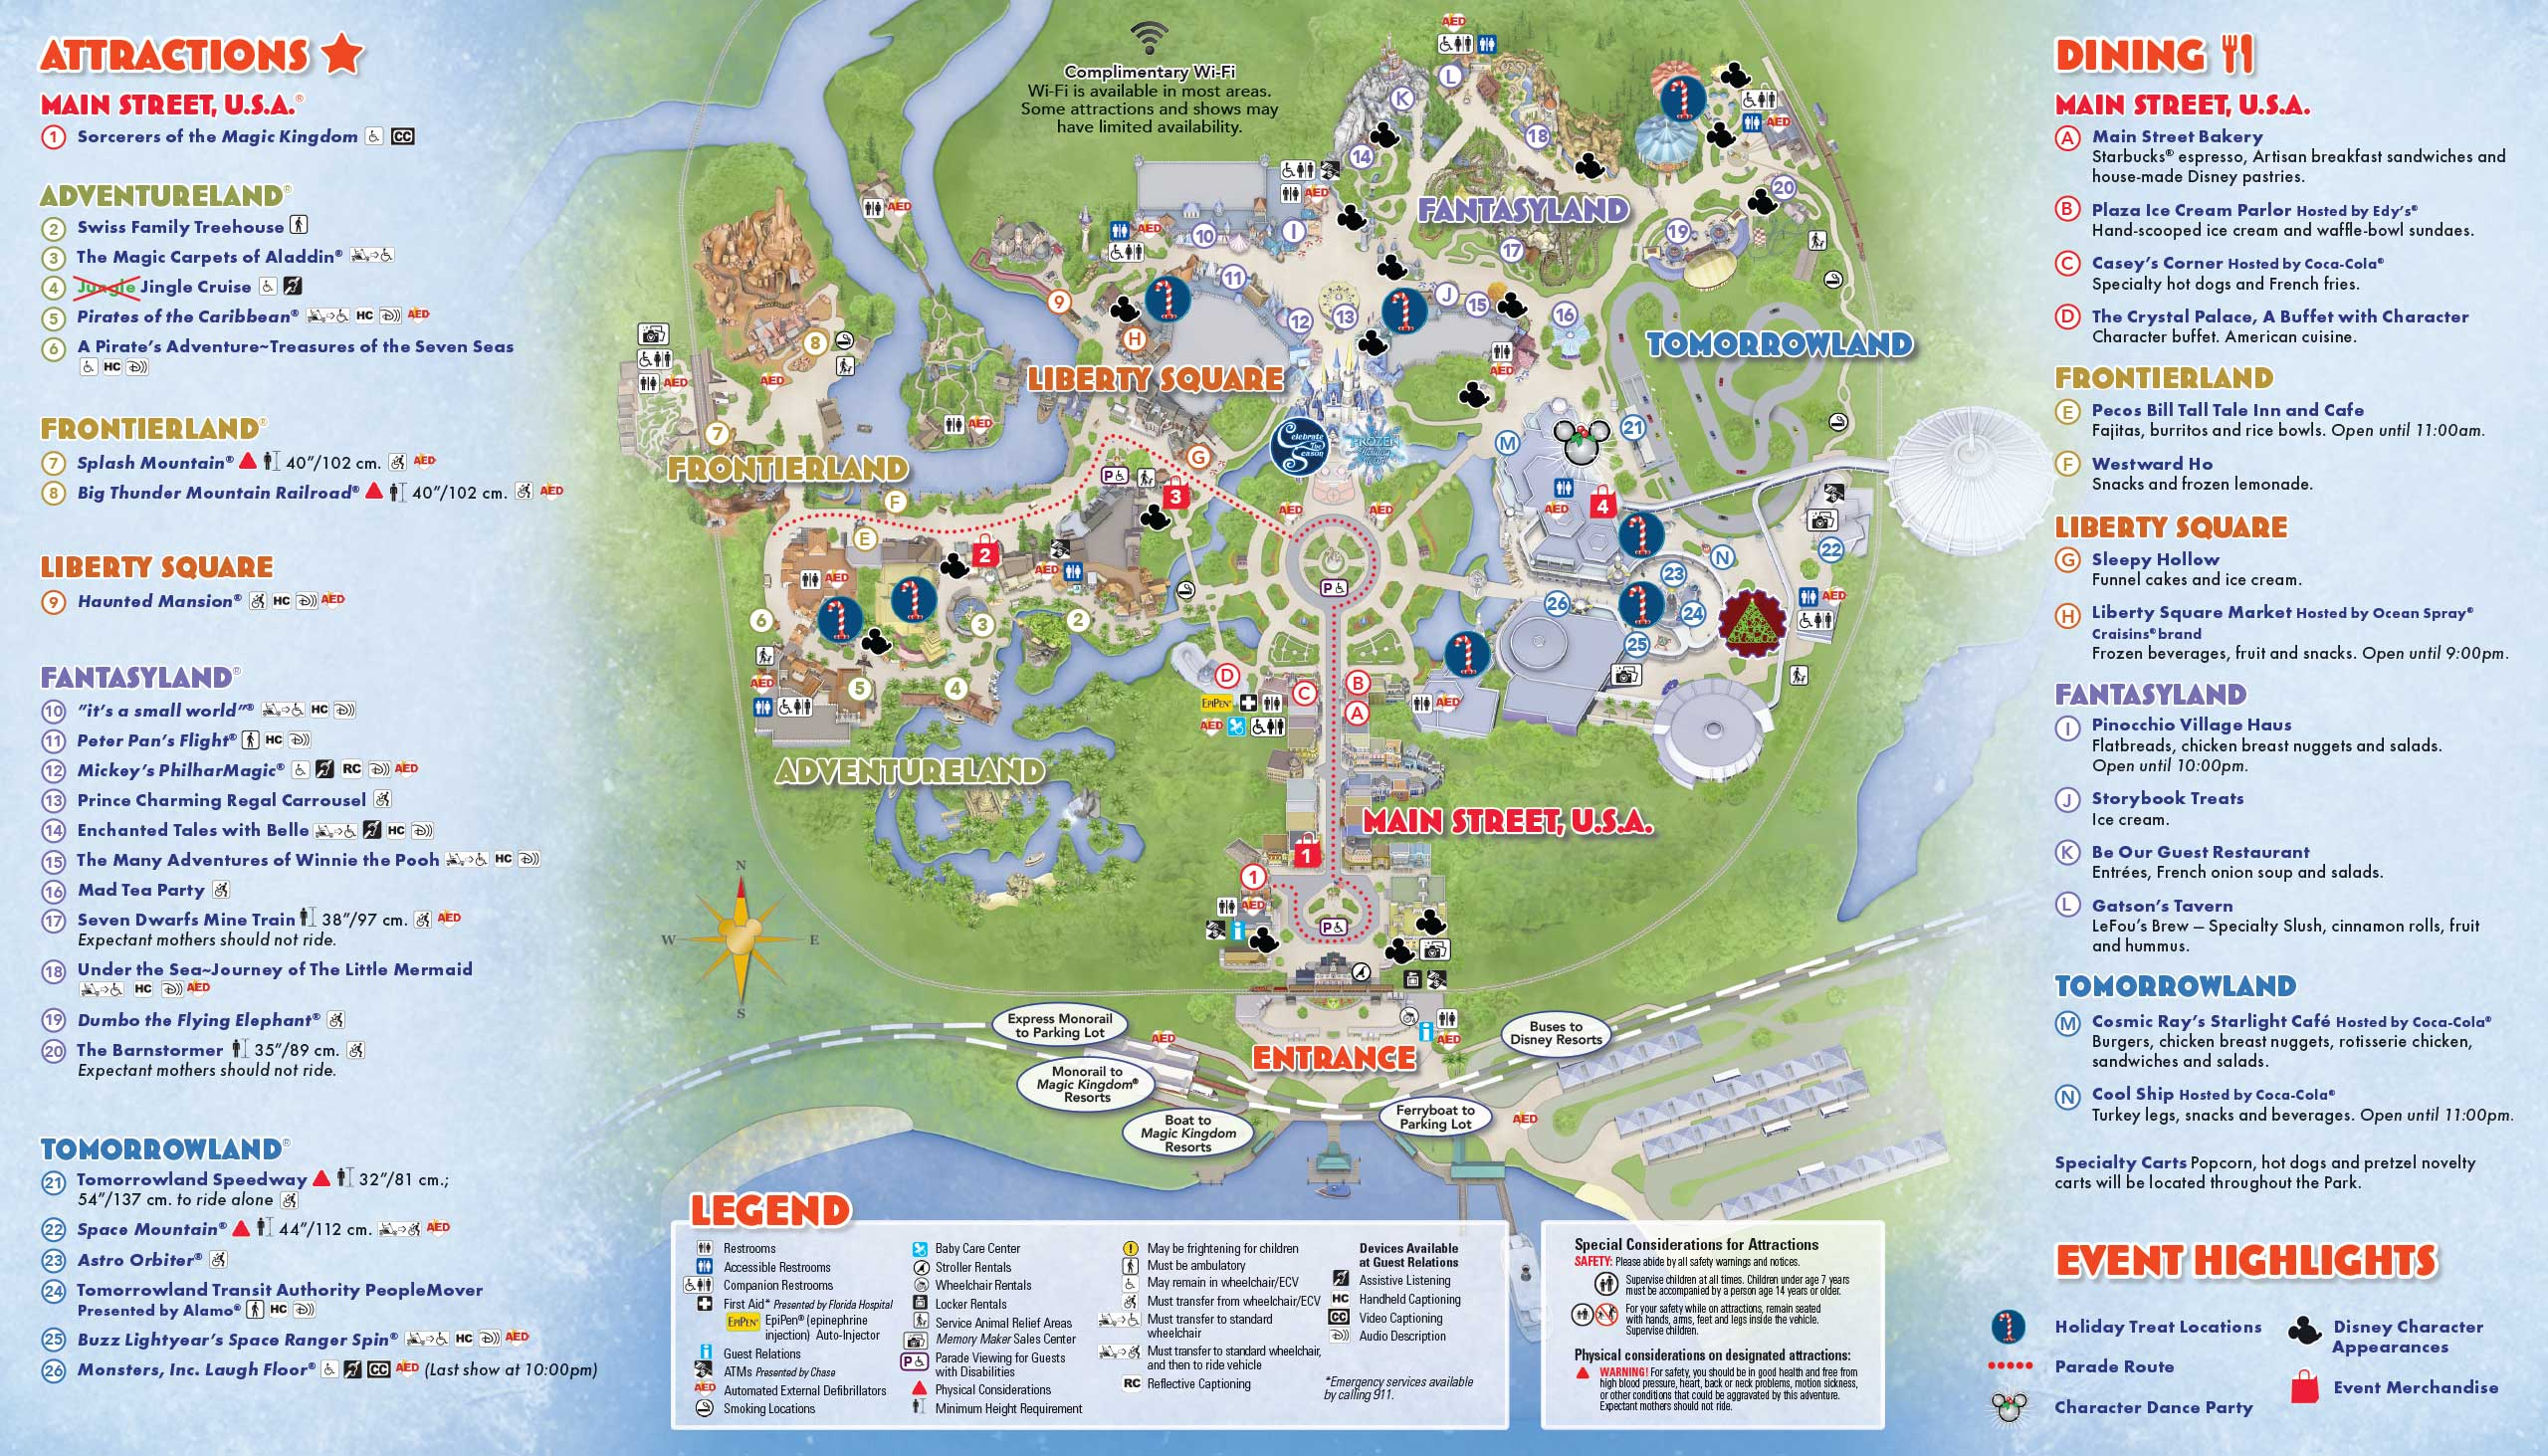 Mickey's Very Merry Christmas Party 2015 guide map - Back